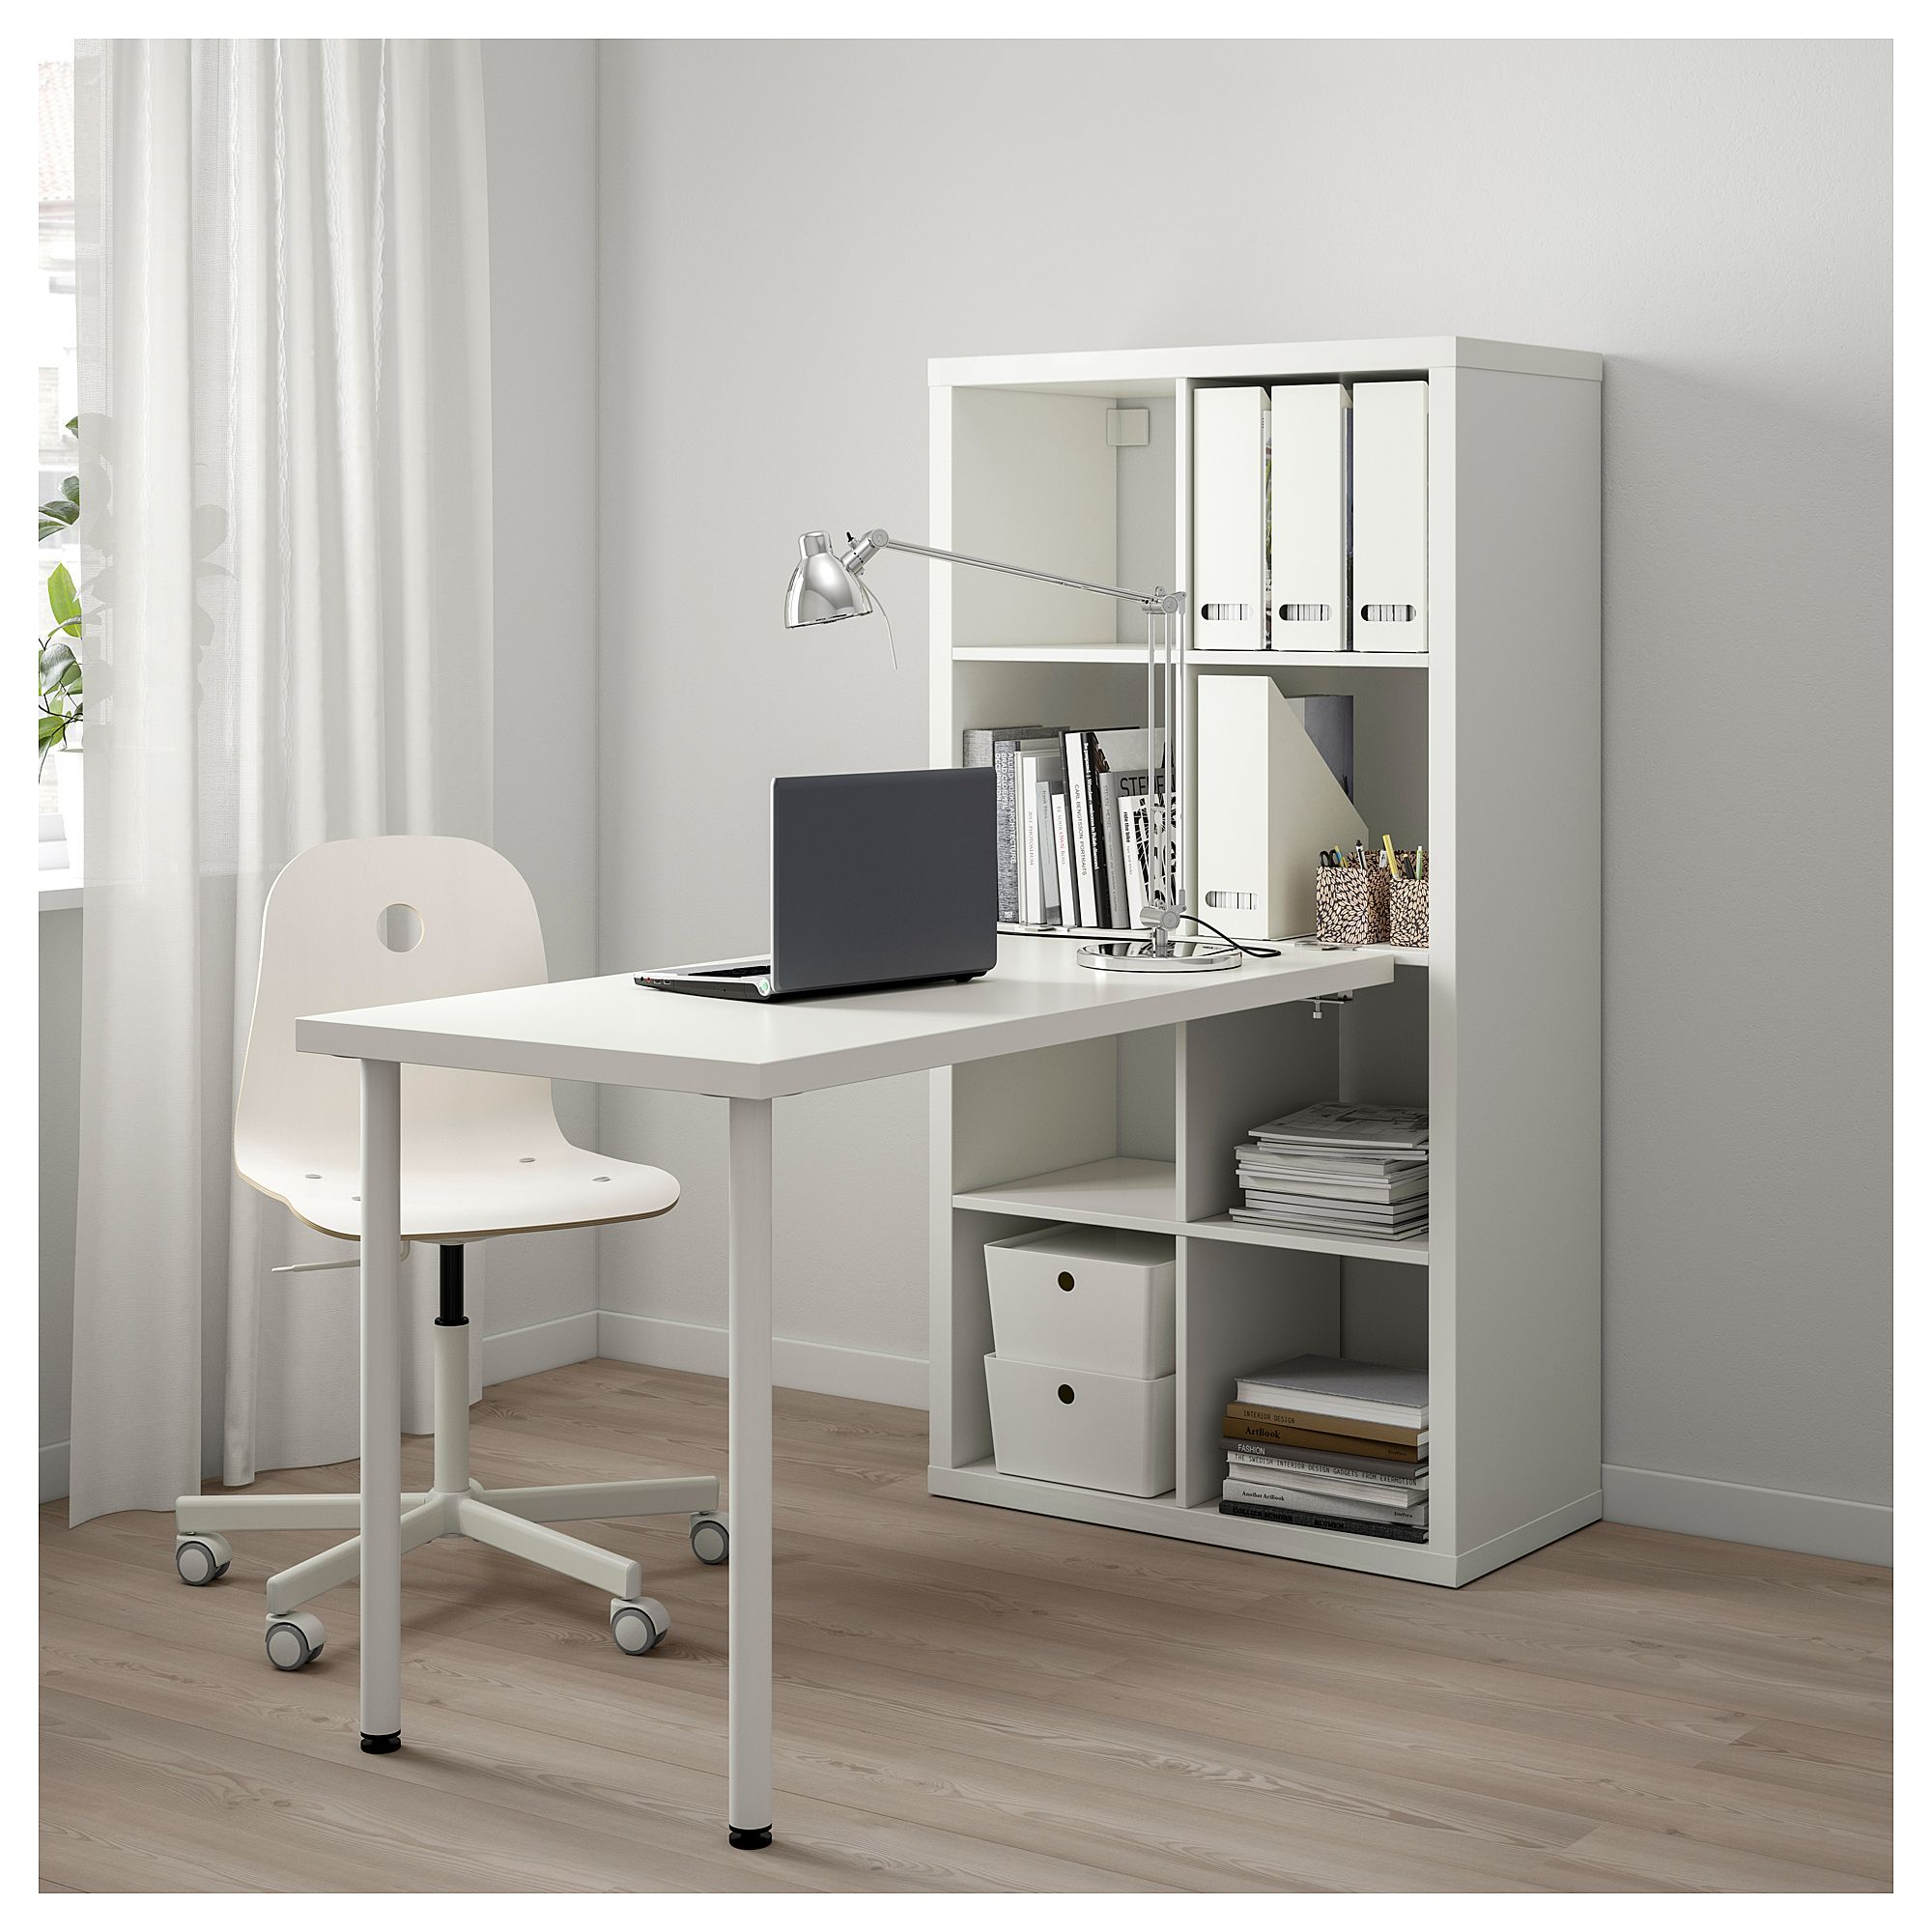 IKEA KALLAX Desk combination white Home office design